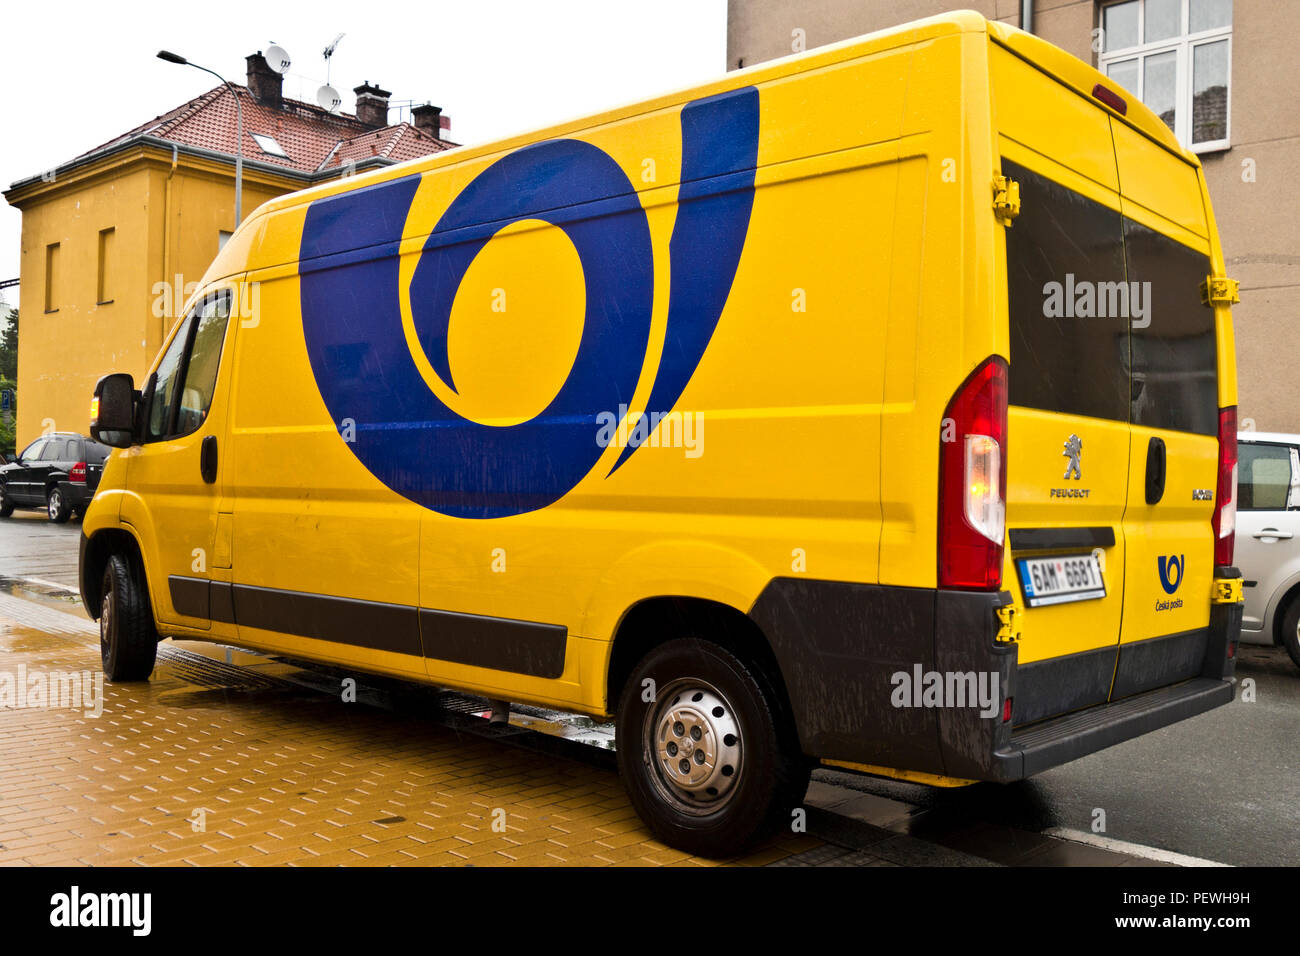 Ceska Posta or Czech mail delivery truck - Stock Image